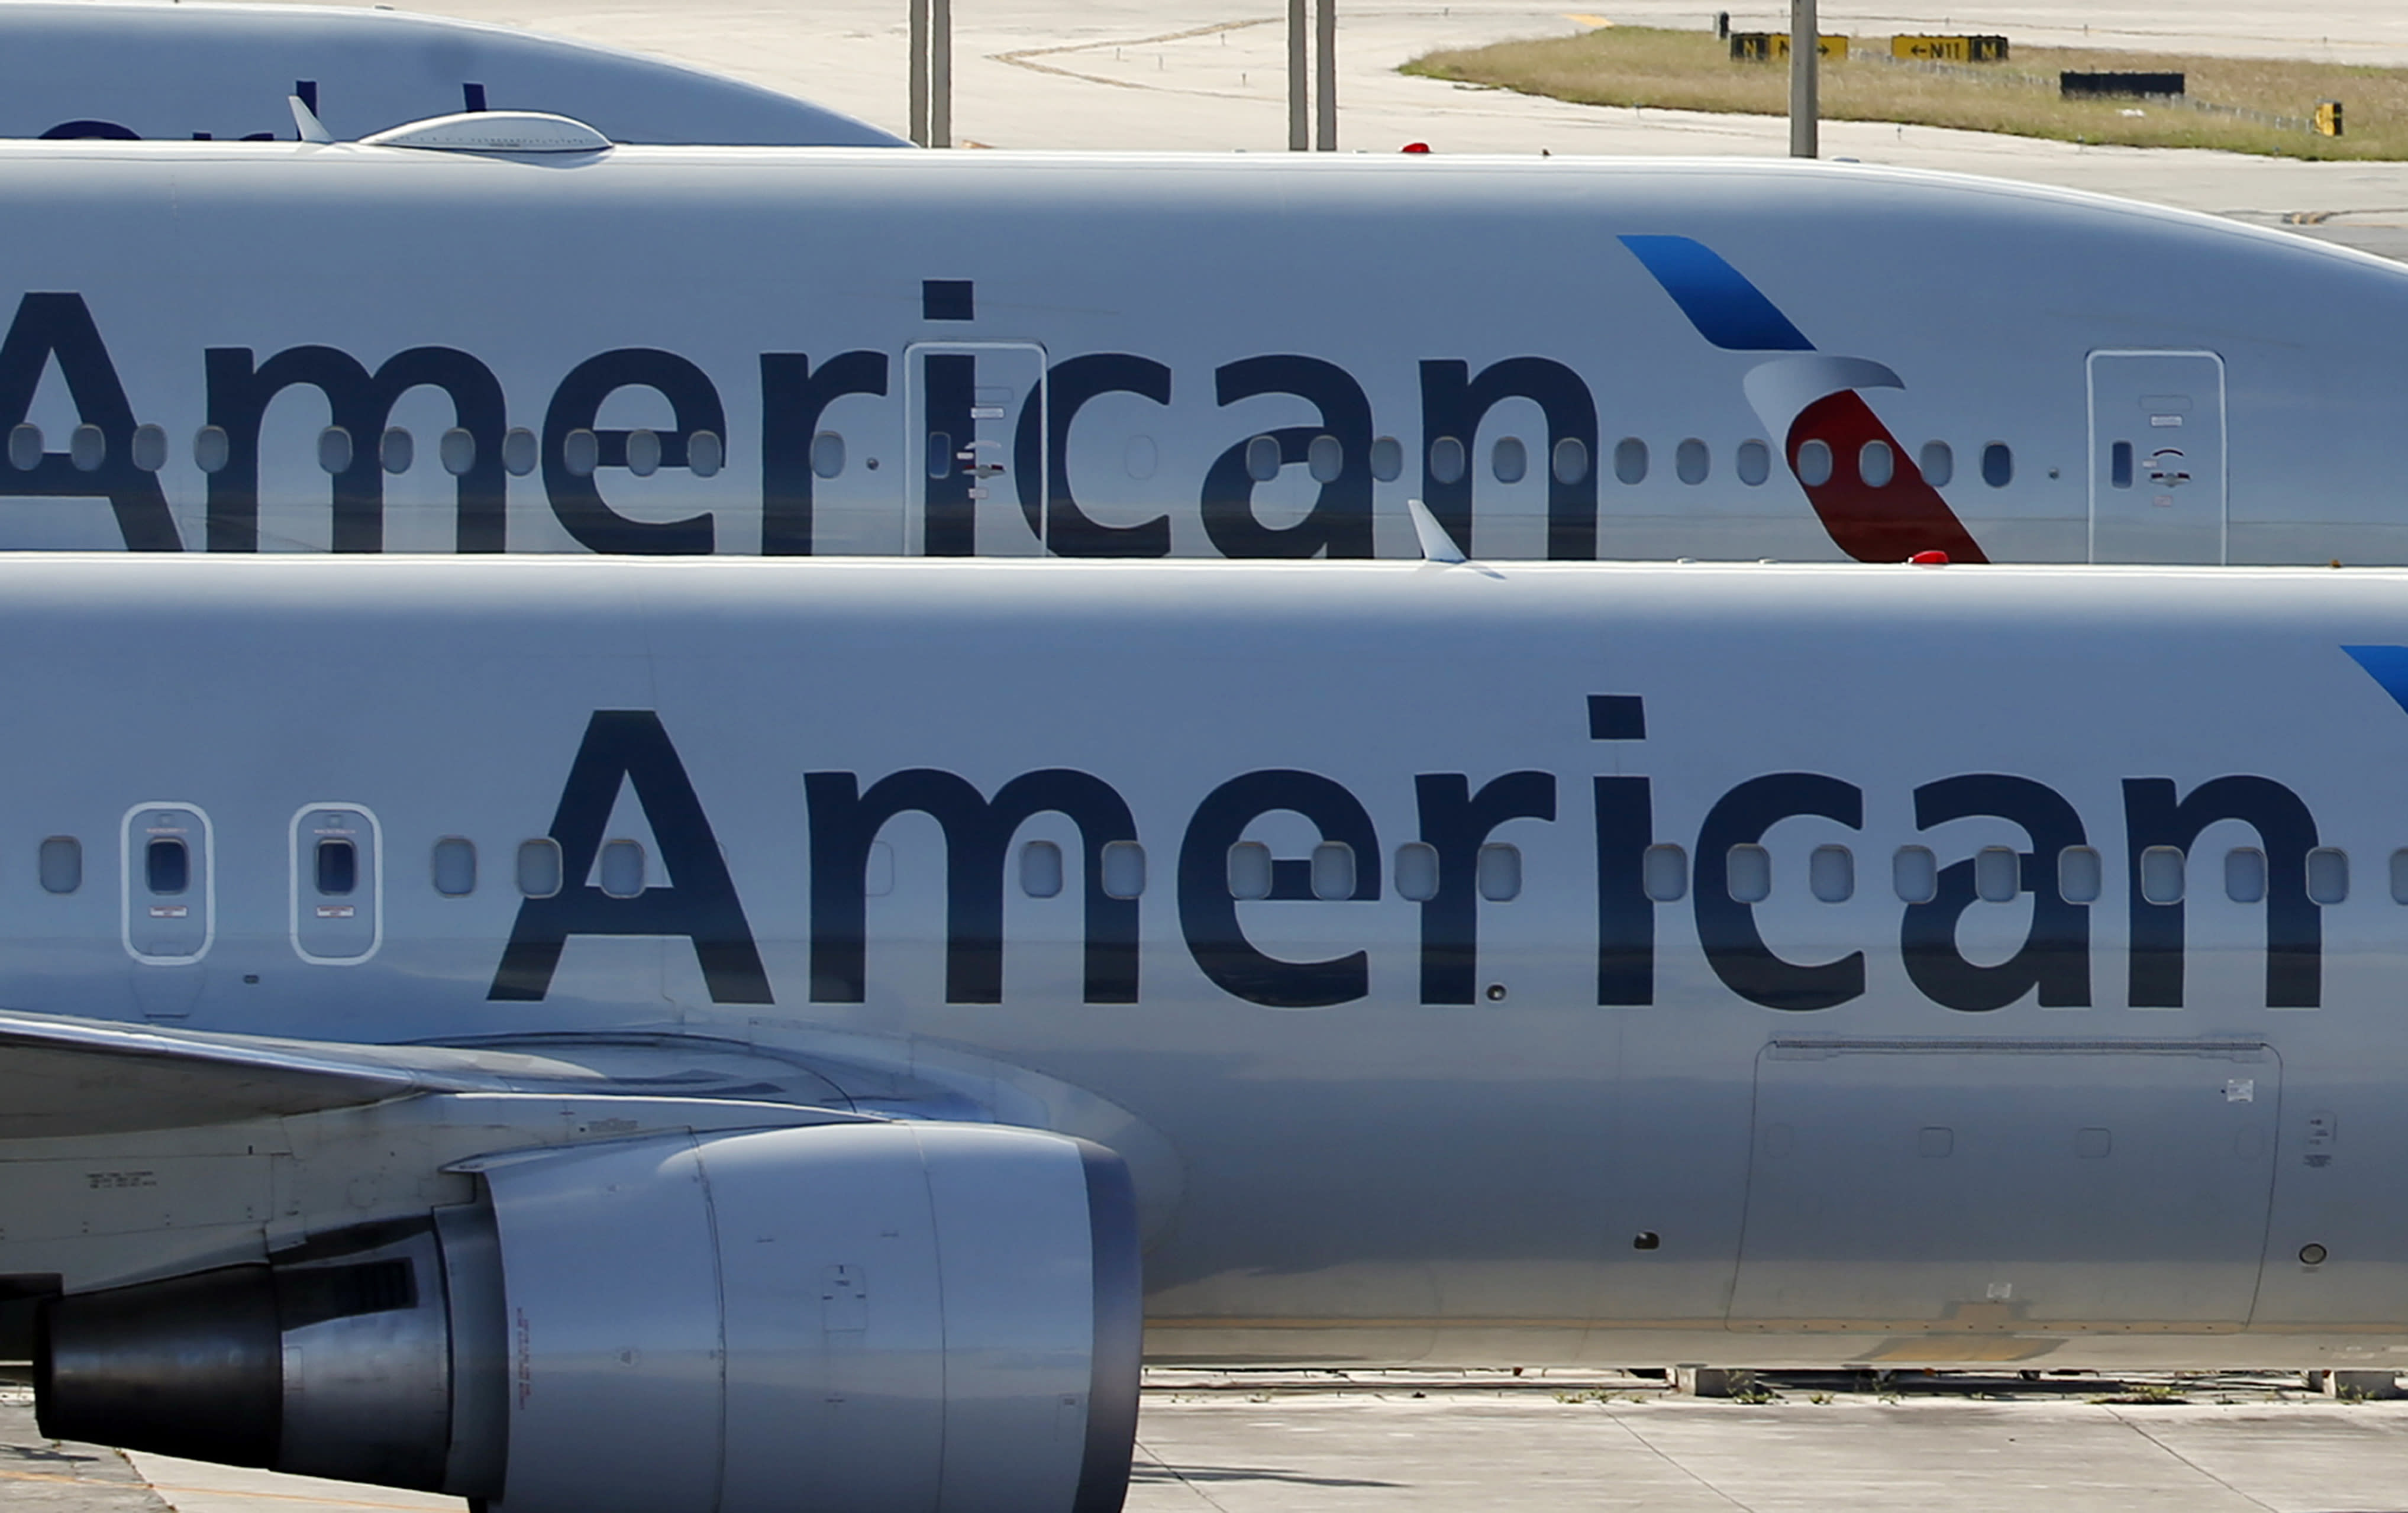 """FILE - In this Nov. 6, 2017, file photo, a pair of American Airlines jets are parked on the airport apron at Miami International Airport in Miami. American Airlines is threatening to prohibit customers from making changes to nonrefundable tickets if Congress makes good on a proposal to crack down on unreasonable airline fees. American CEO Doug Parker says his airline would be acting just like many other businesses when customers want to swap their ticket for a different flight or for another day. """"We - like the baseball team, like the opera - would say, 'We're sorry, it was nonrefundable,'"""" Parker said this week. (AP Photo/Wilfredo Lee, File)"""